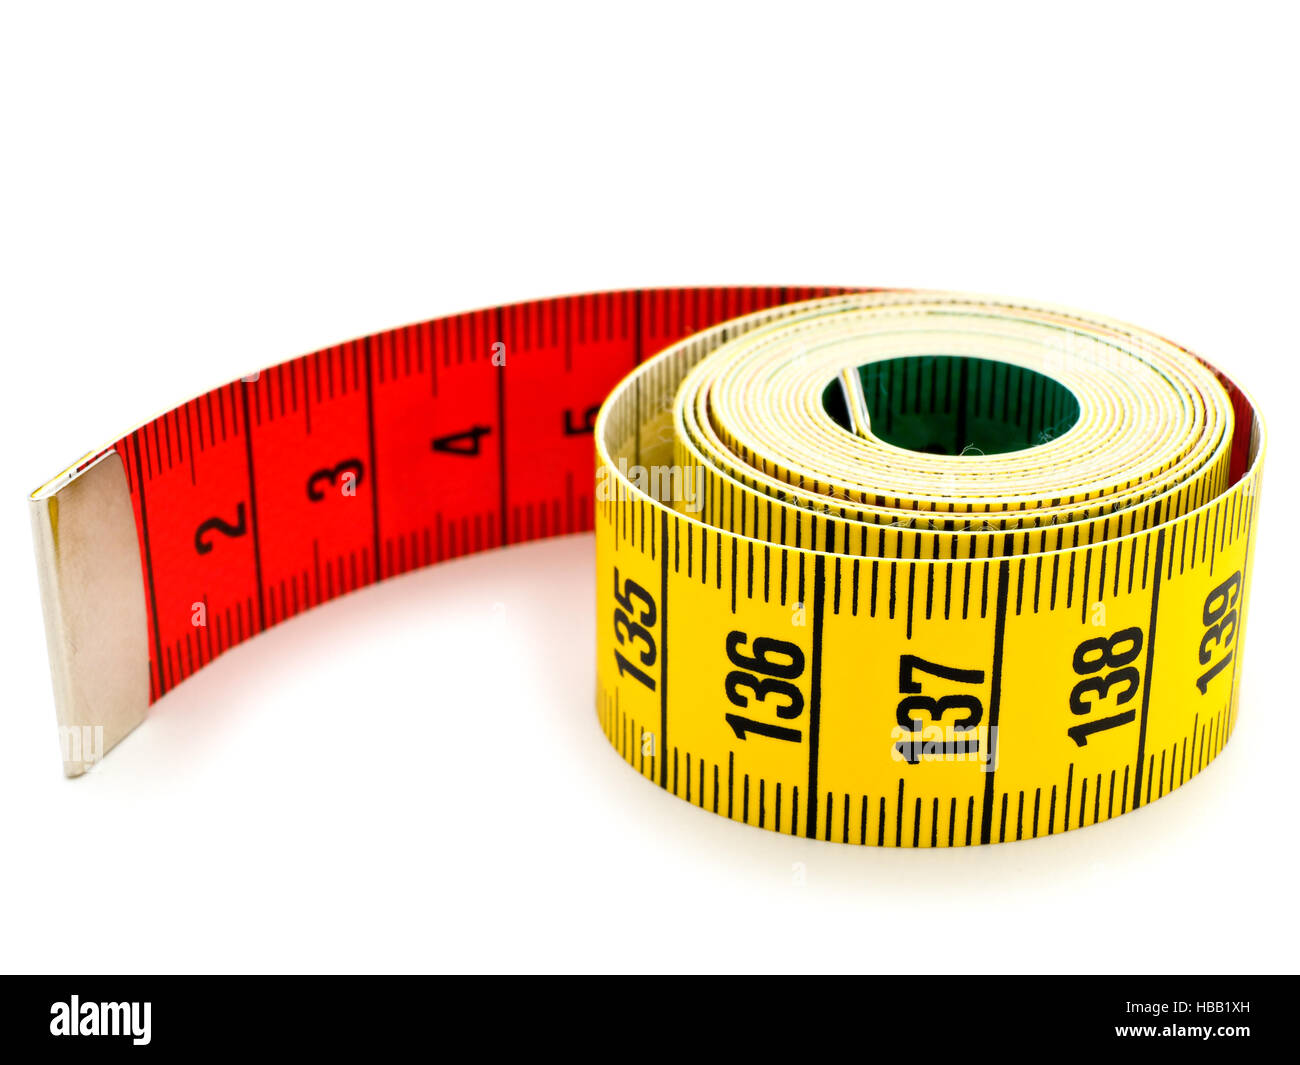 Centimeter - Stock Image